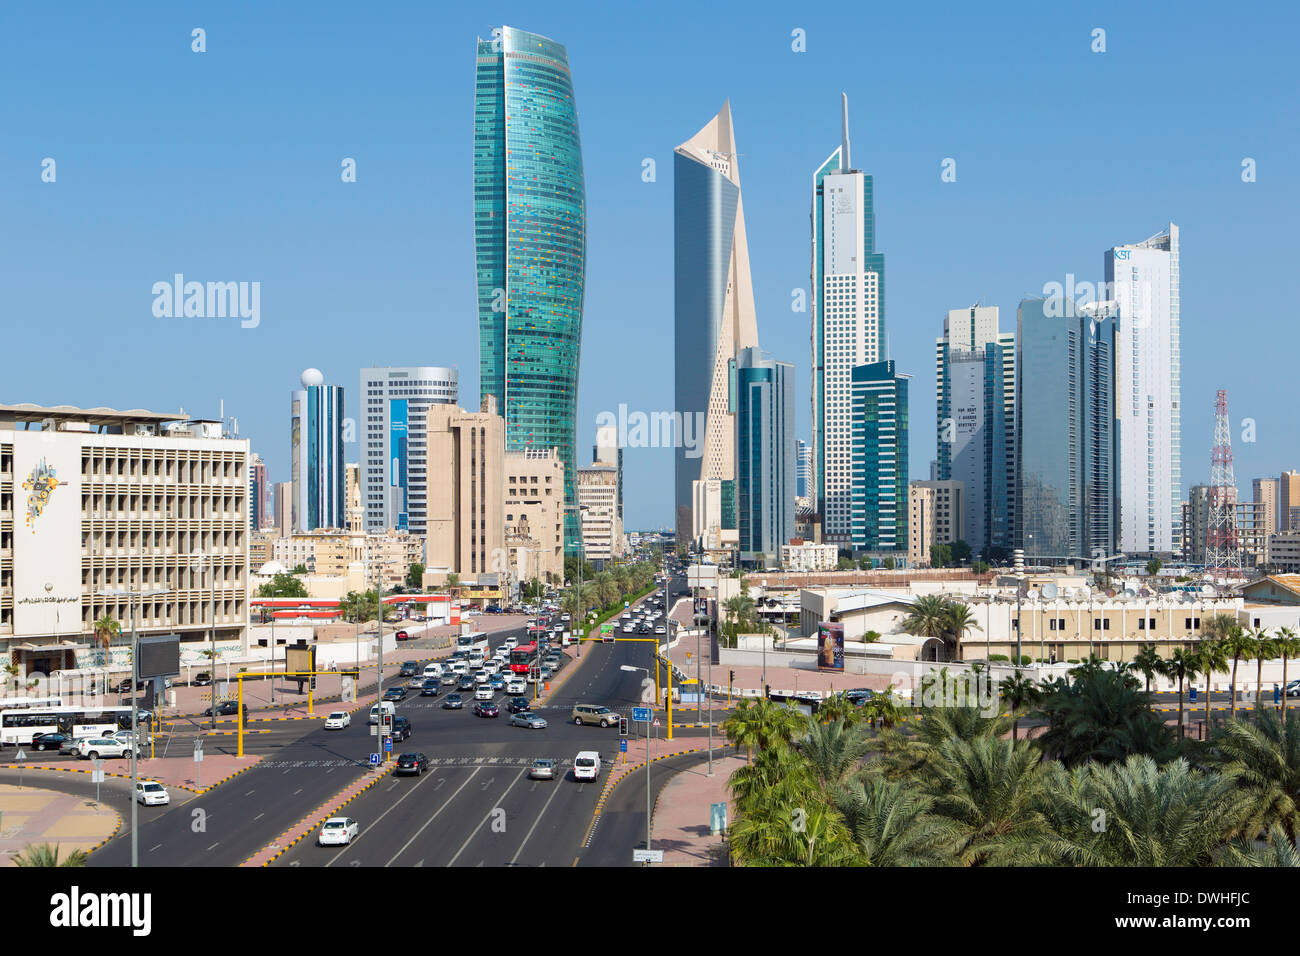 Kuwait City, modern city skyline and central business district Stock